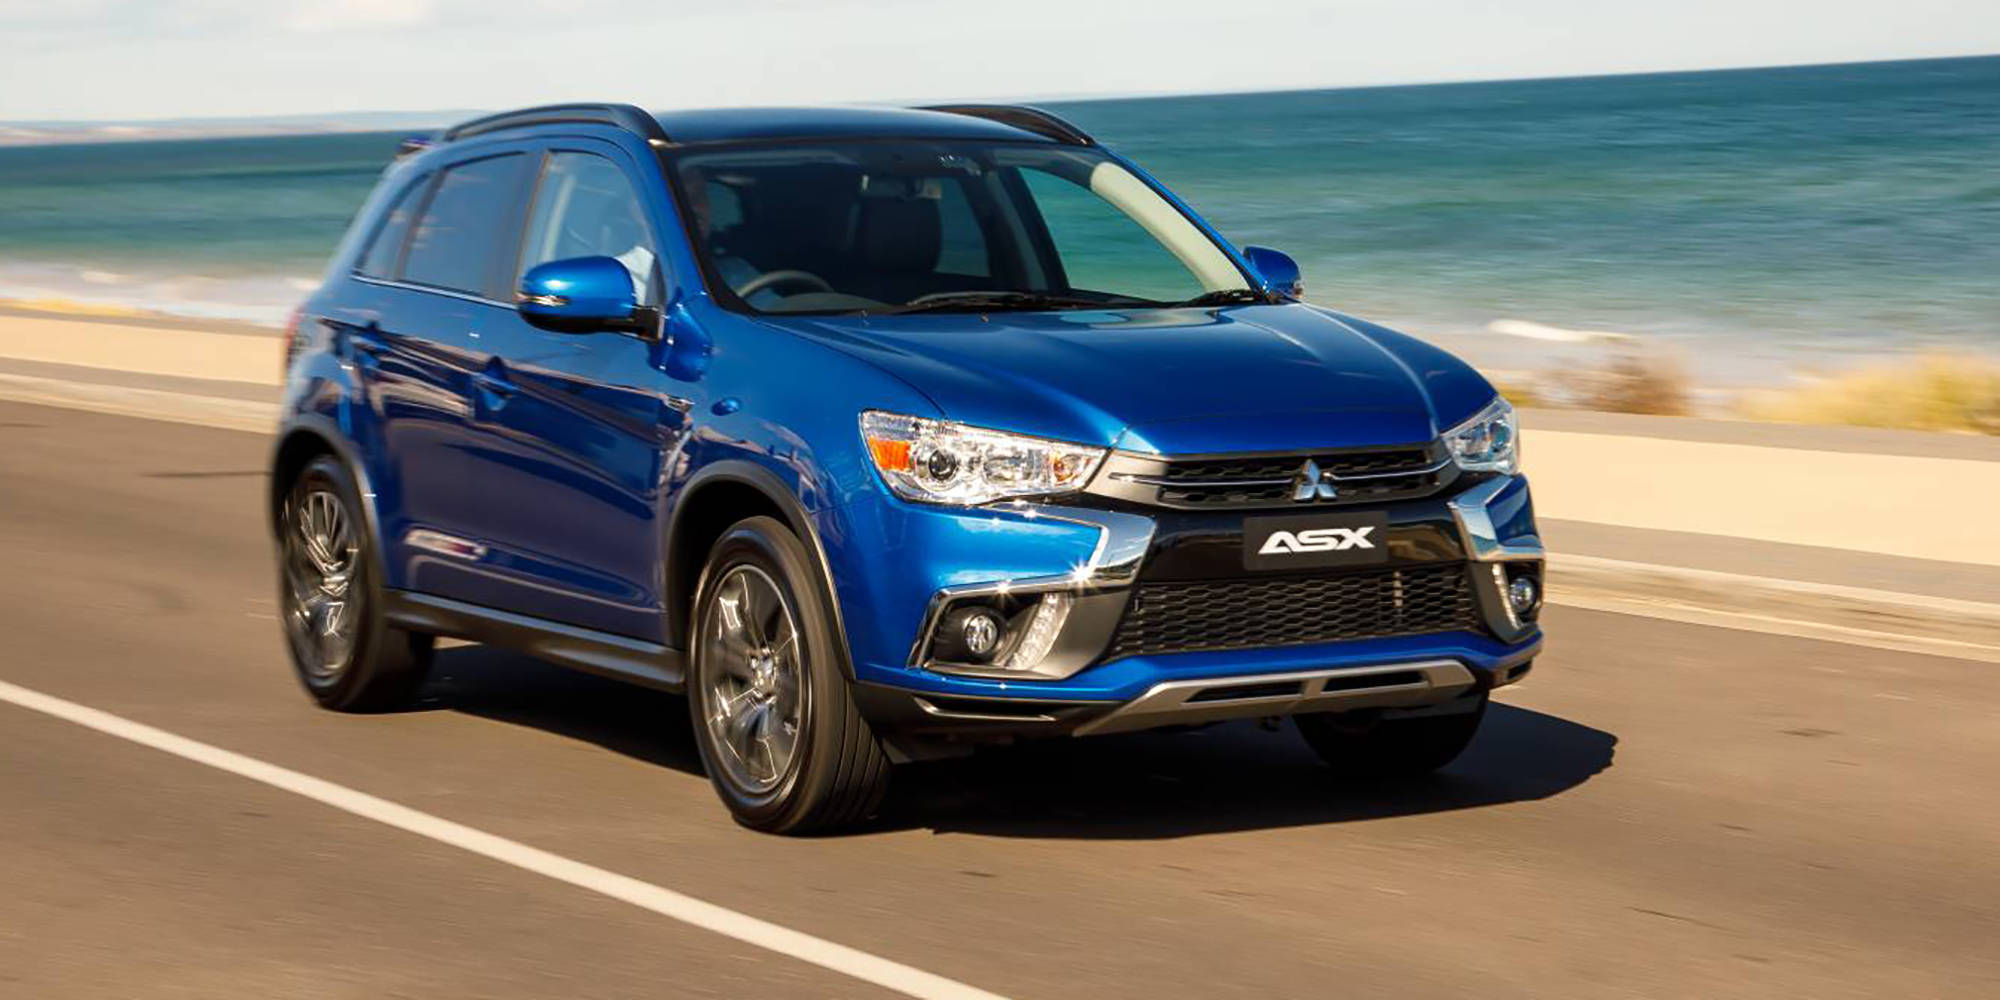 2018 Mitsubishi Asx Pricing And Specs Photos